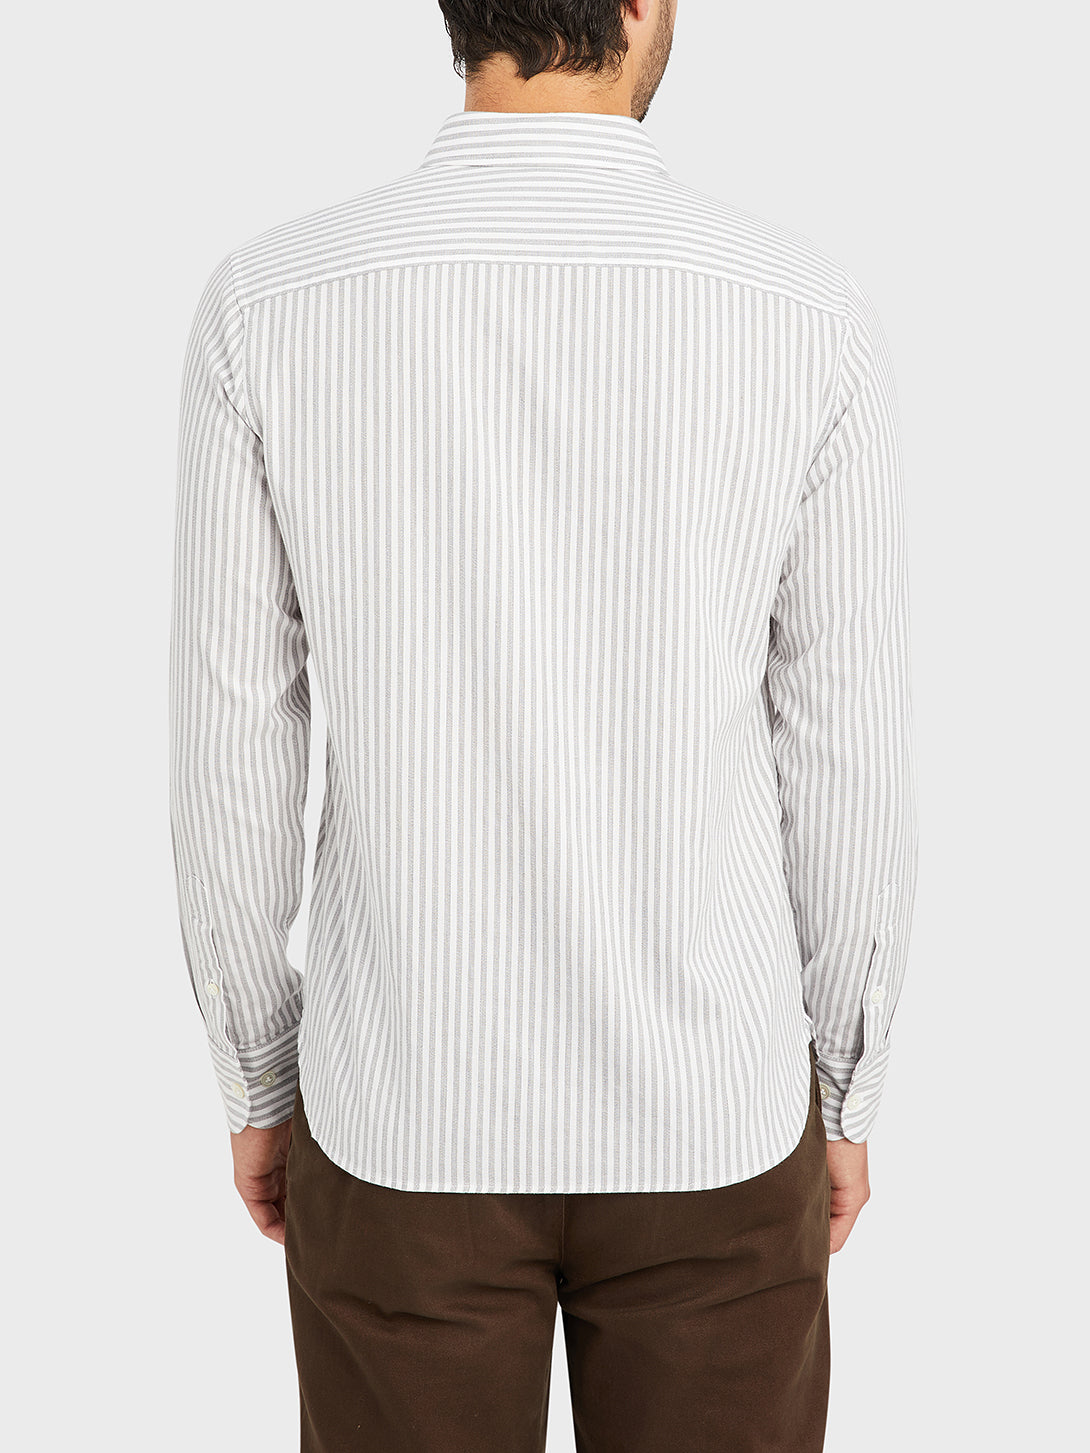 black friday deals FULTON STRIPED OXFORD SHIRT GREY STRIPE